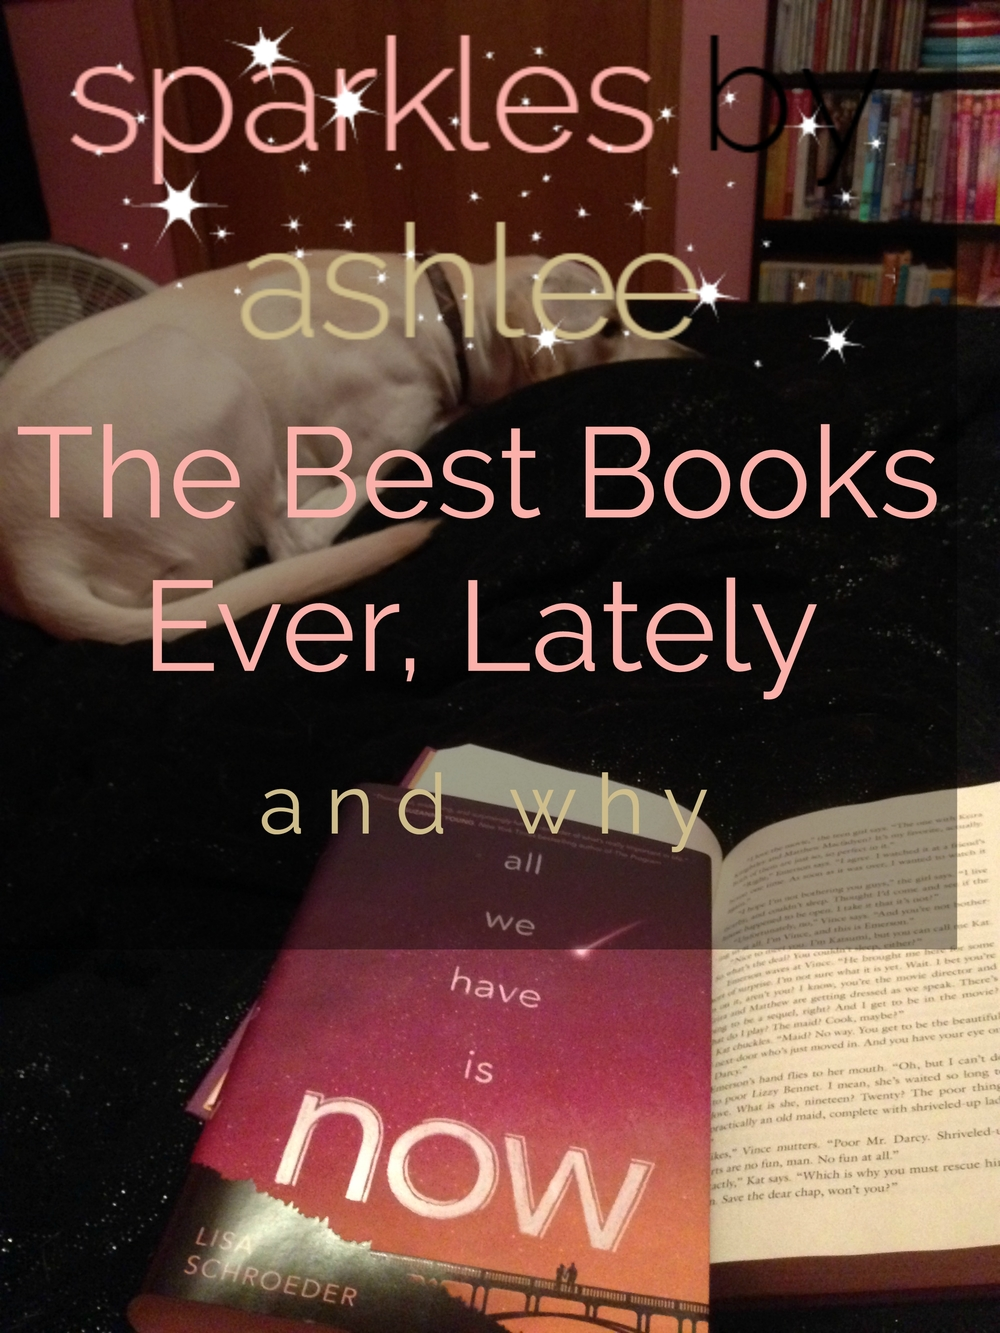 The-Best-Inspiring-Books-Ever-Lately-Sparkles-by-Ashlee.jpg